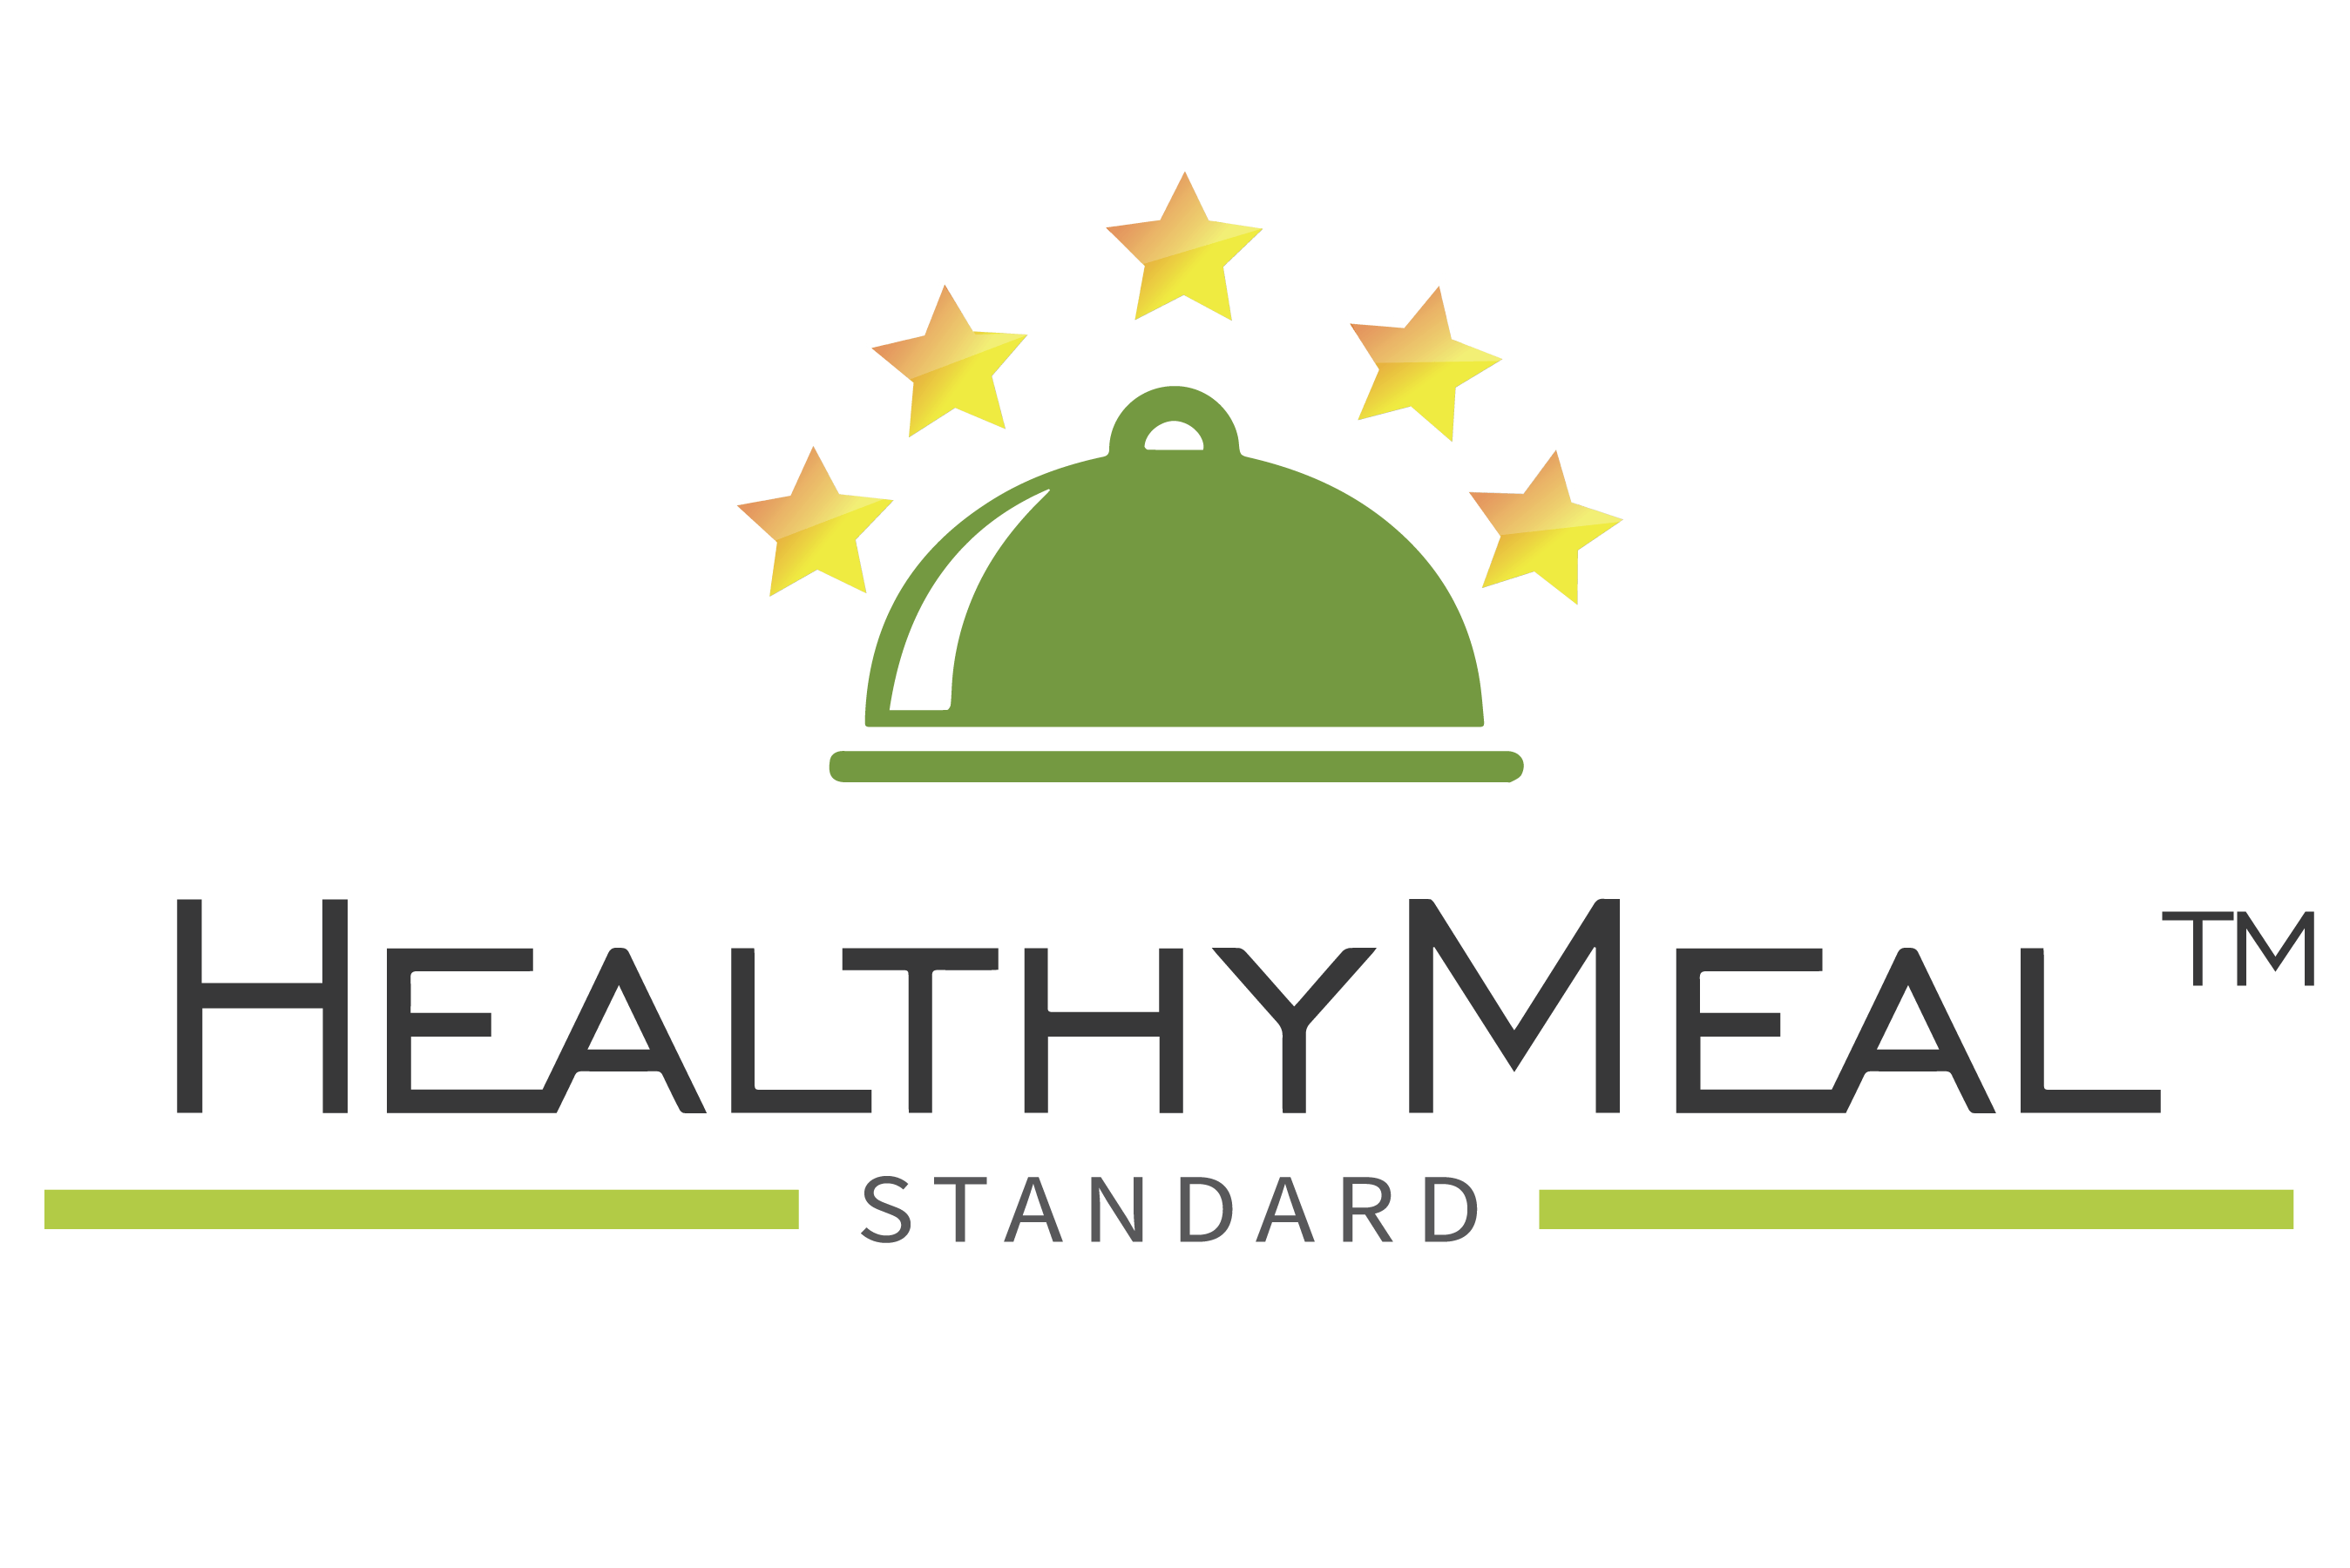 Healthy Meal Standard brand logo